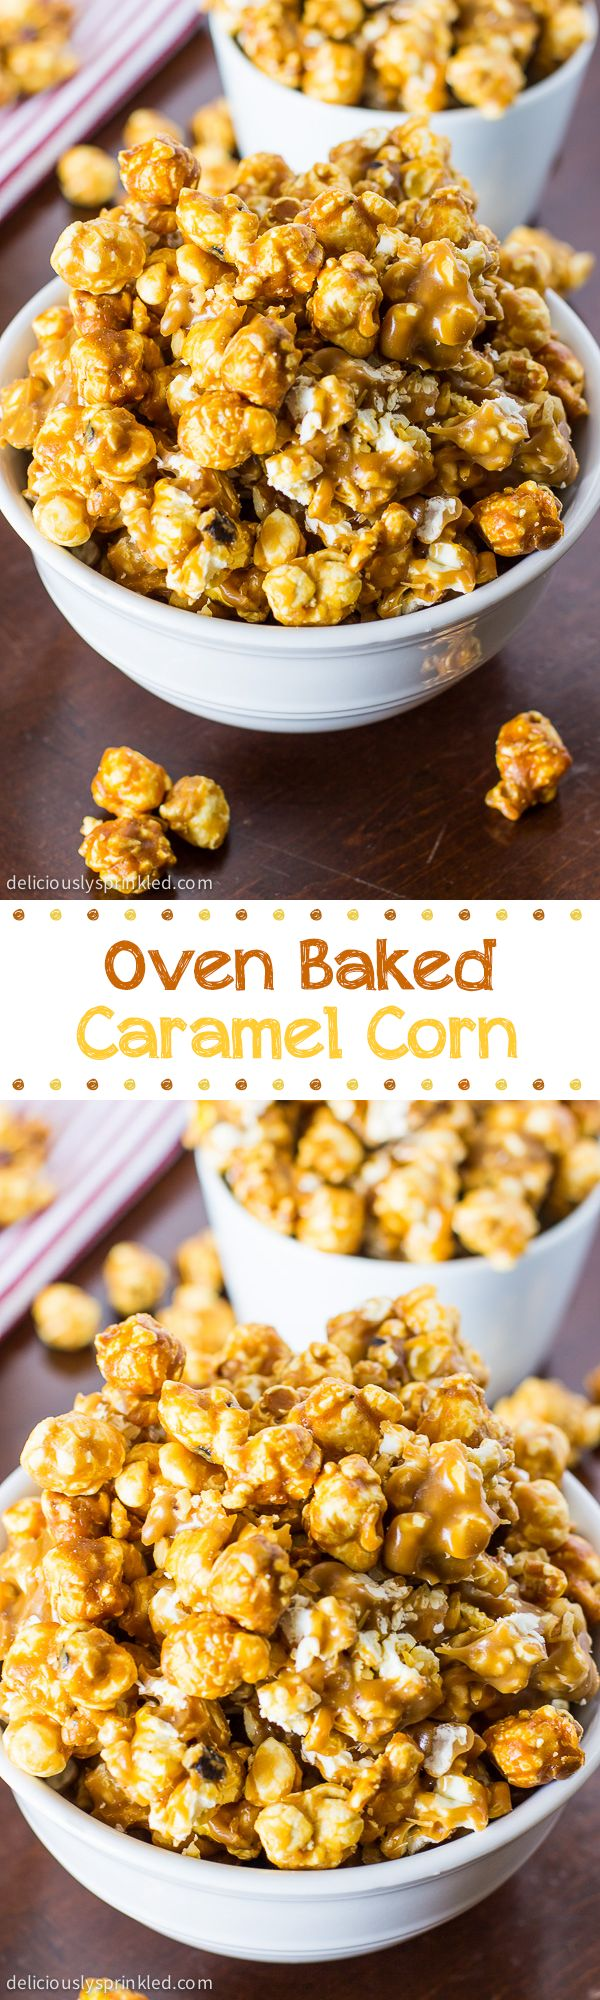 Oven Baked Caramel Corn: One of our families favorite sweet & salty snacks! Makes a perfect gift too! :)